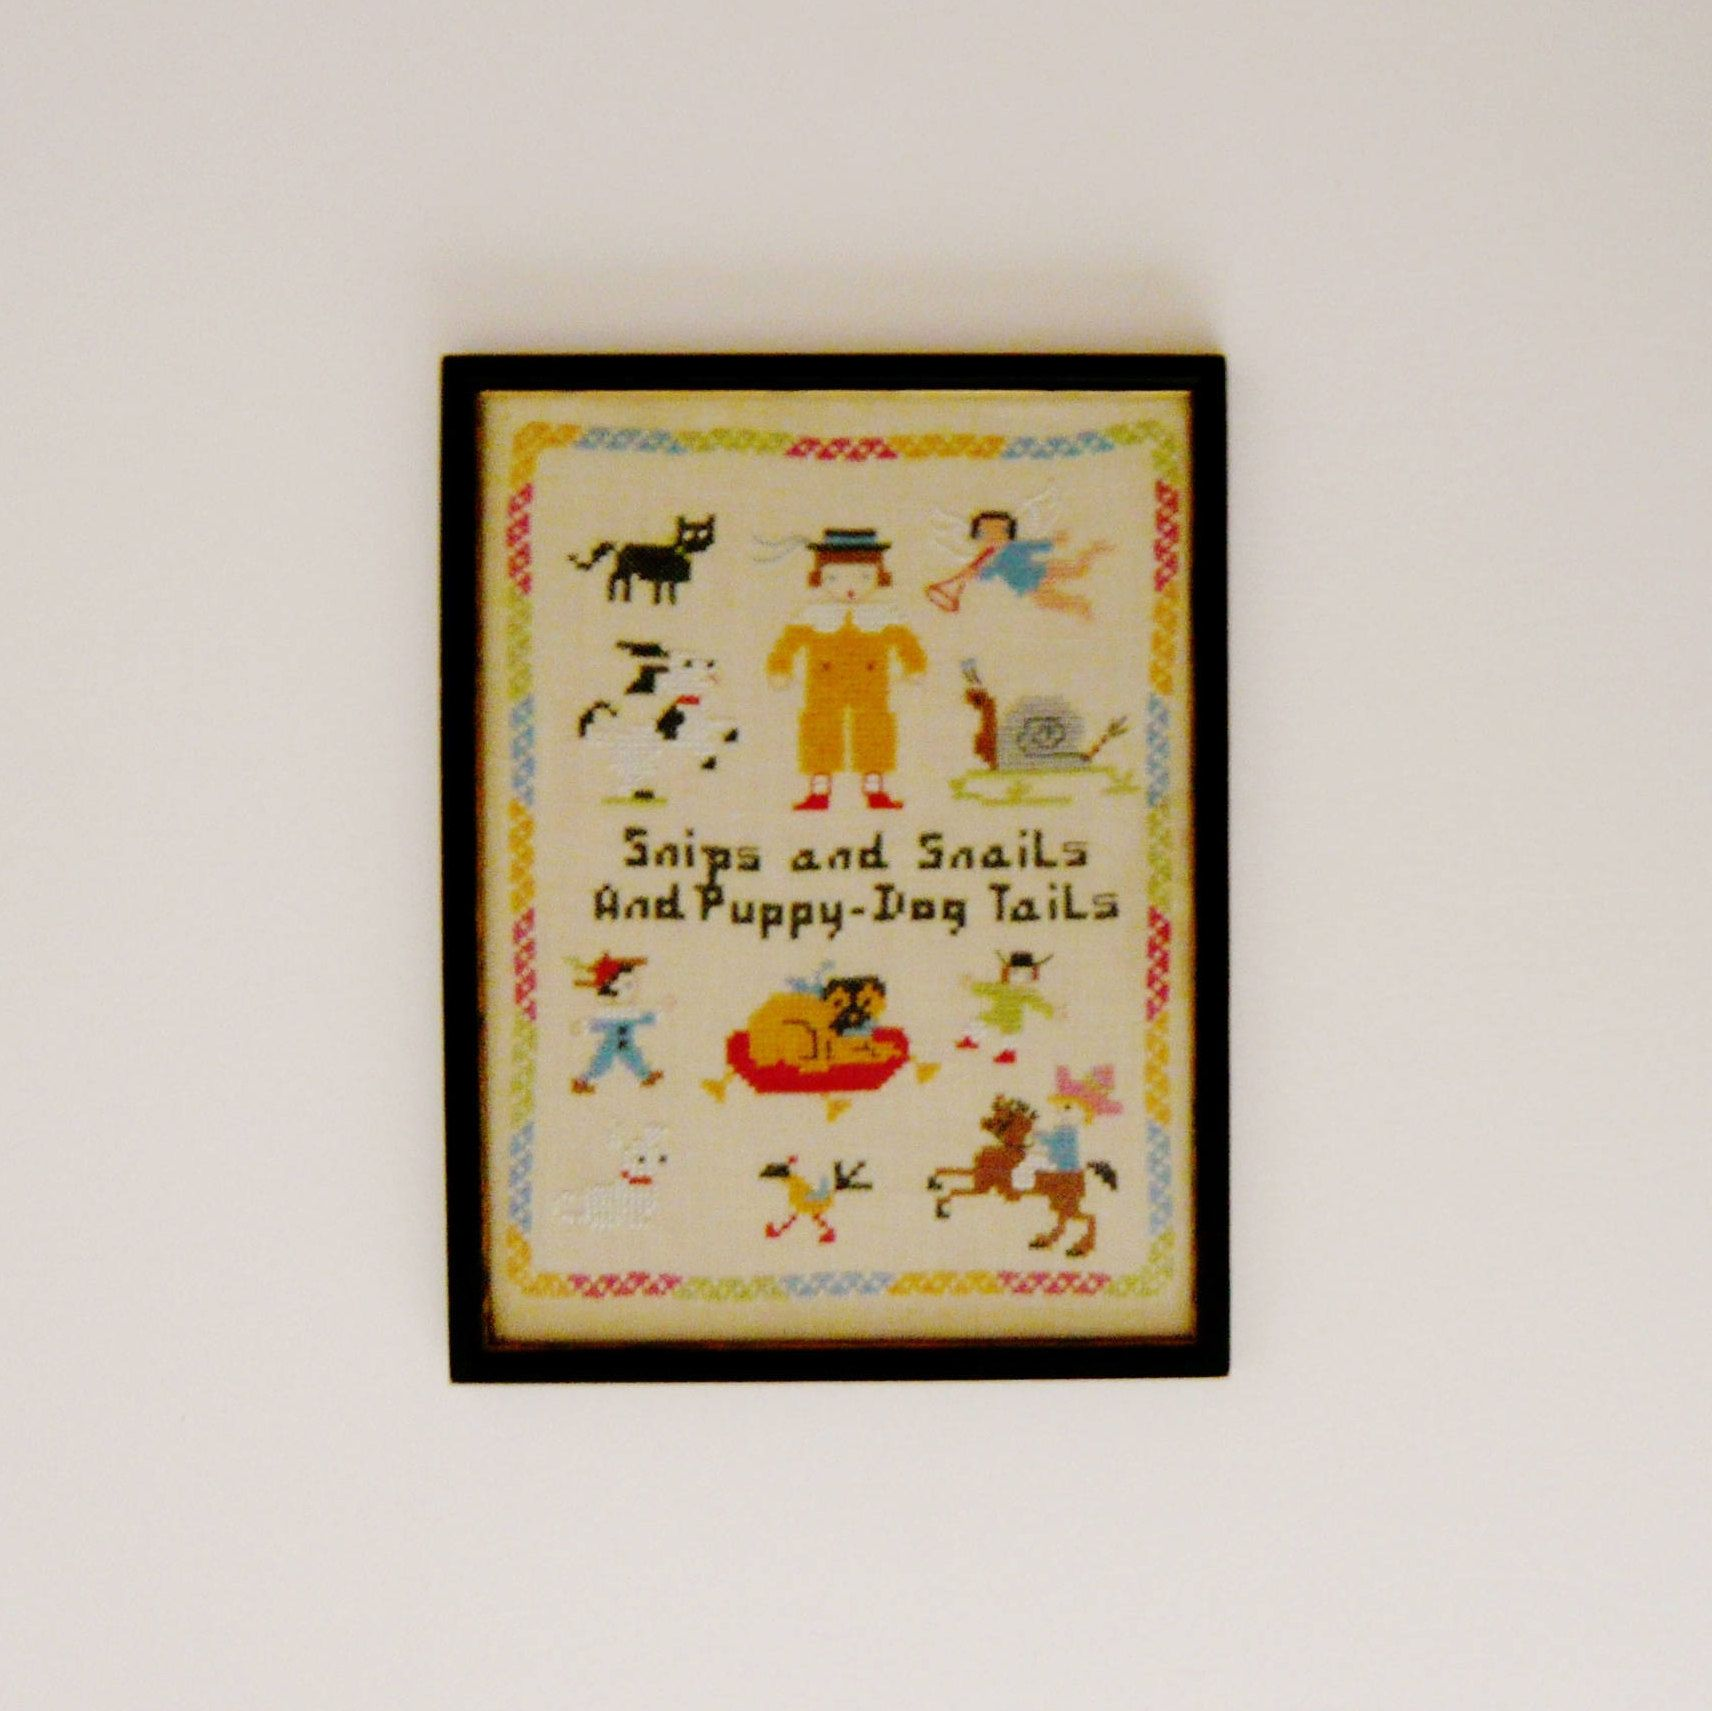 Vintage Children S Nursery Rhyme Snips And Snails Puppy Dog Tails Cross Sch Sampler Framed